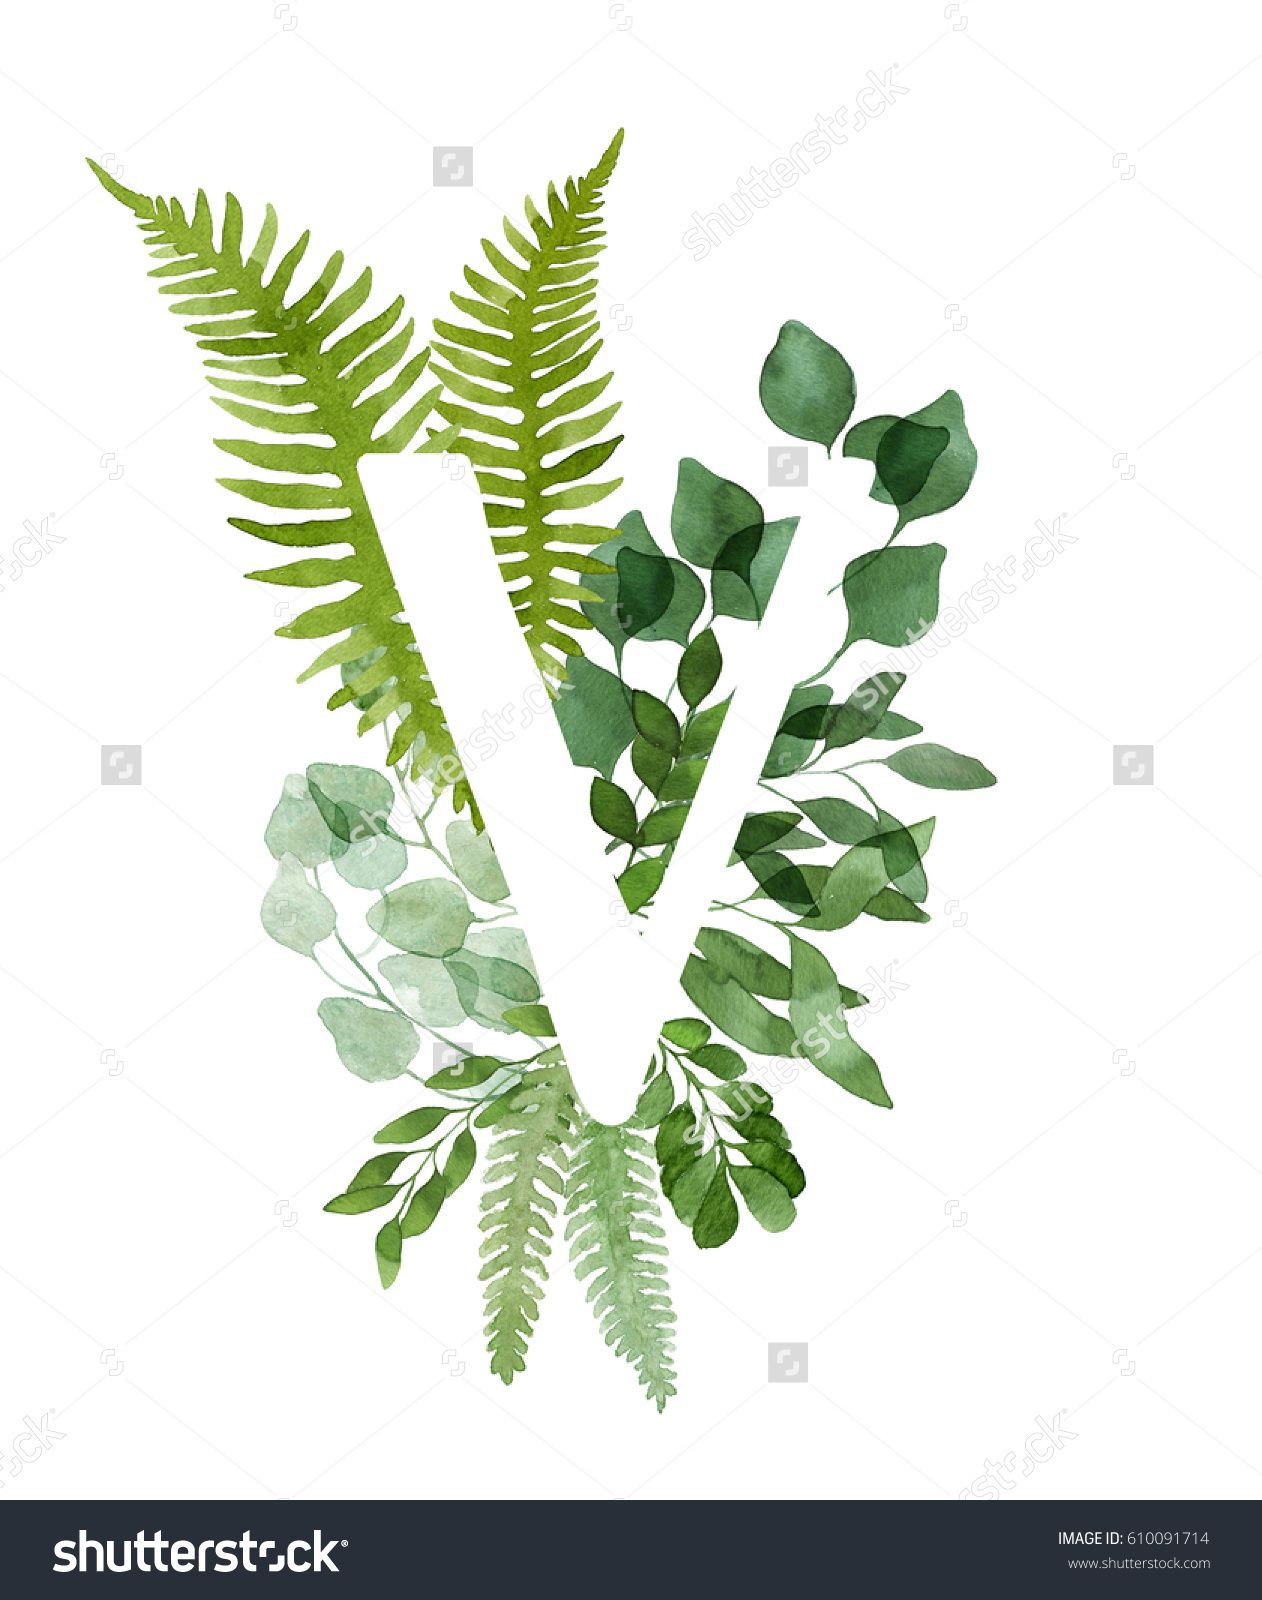 Floral letter v beautiful green leaves and branches painted with floral letter v beautiful green leaves and branches painted with watercolor watercolor eucalyptus and altavistaventures Choice Image